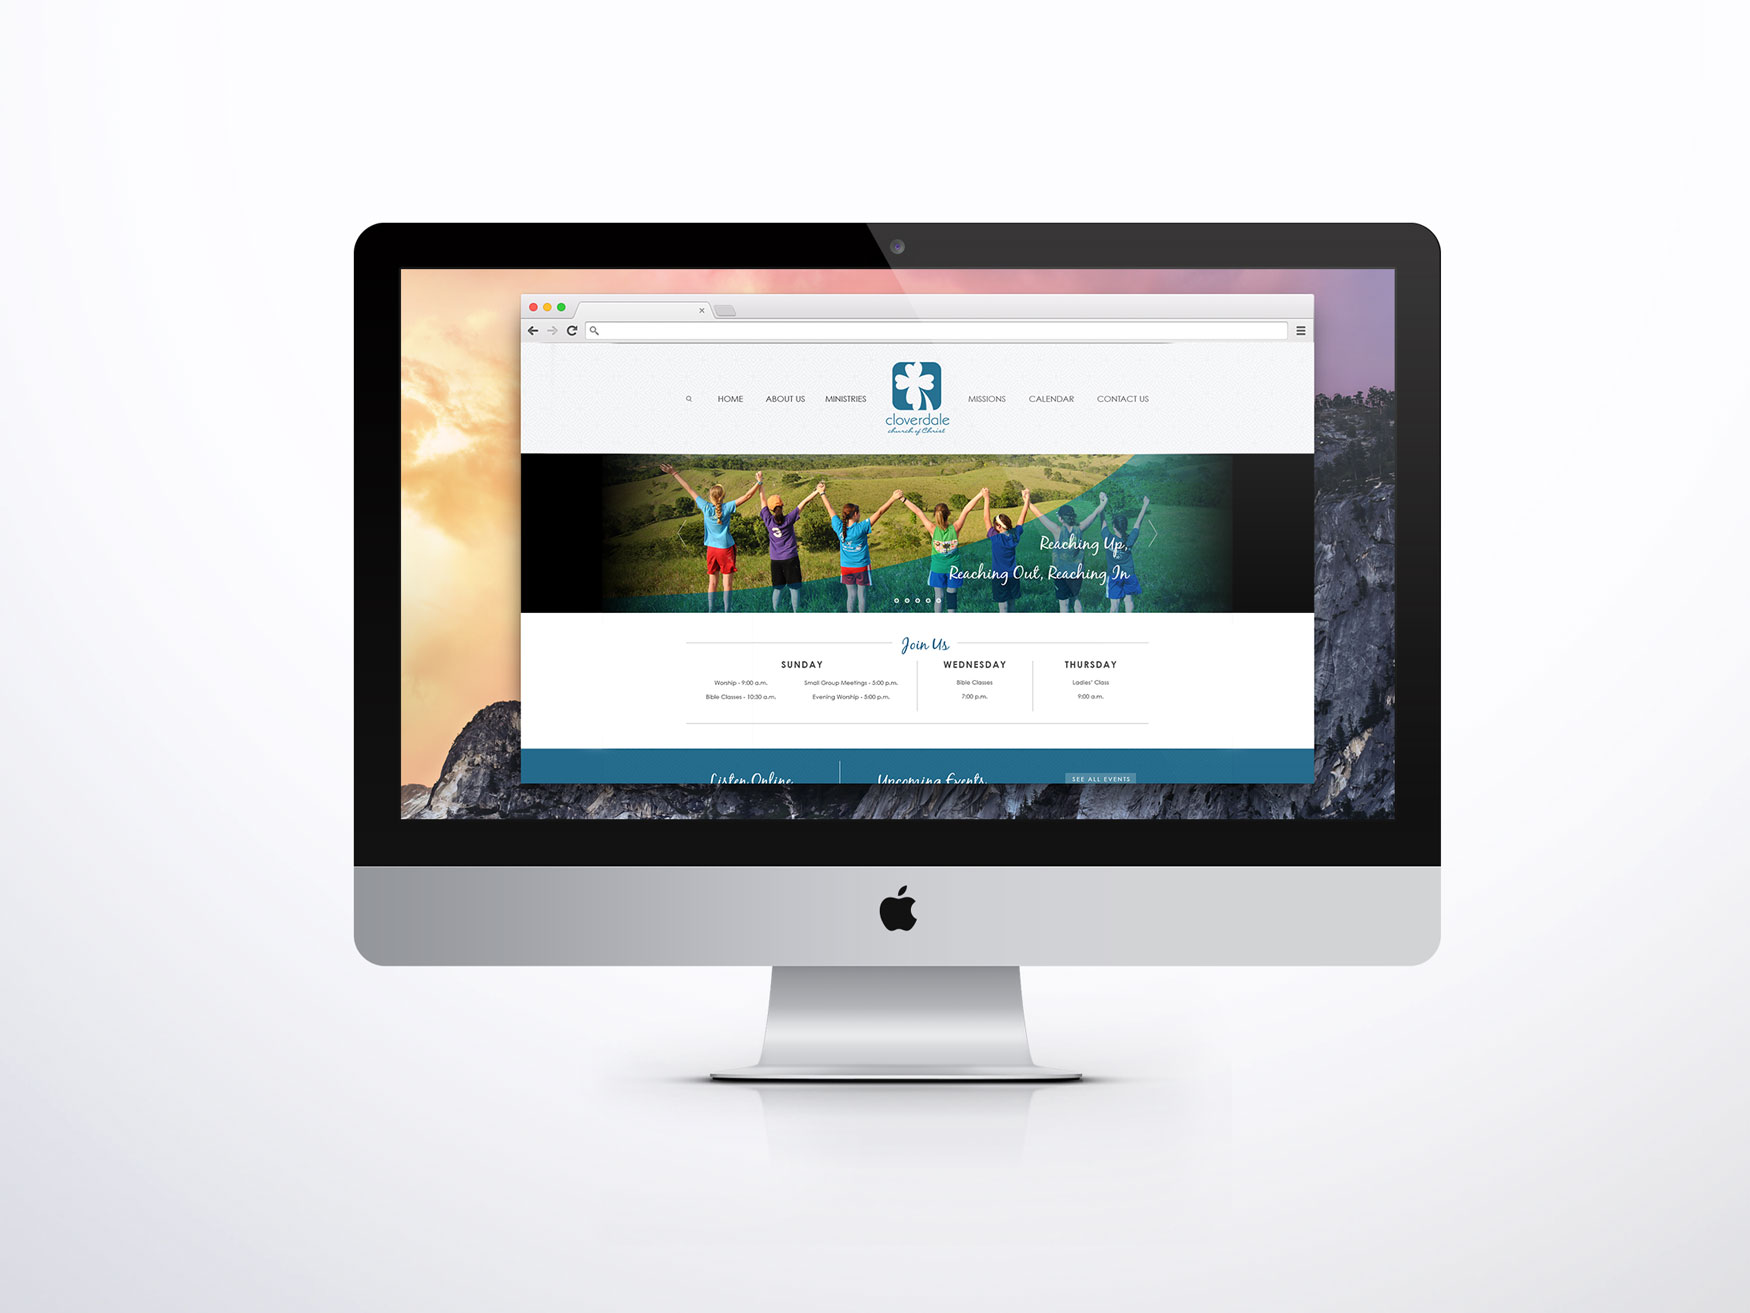 Cloverdale Church of Christ Web Design Mockup